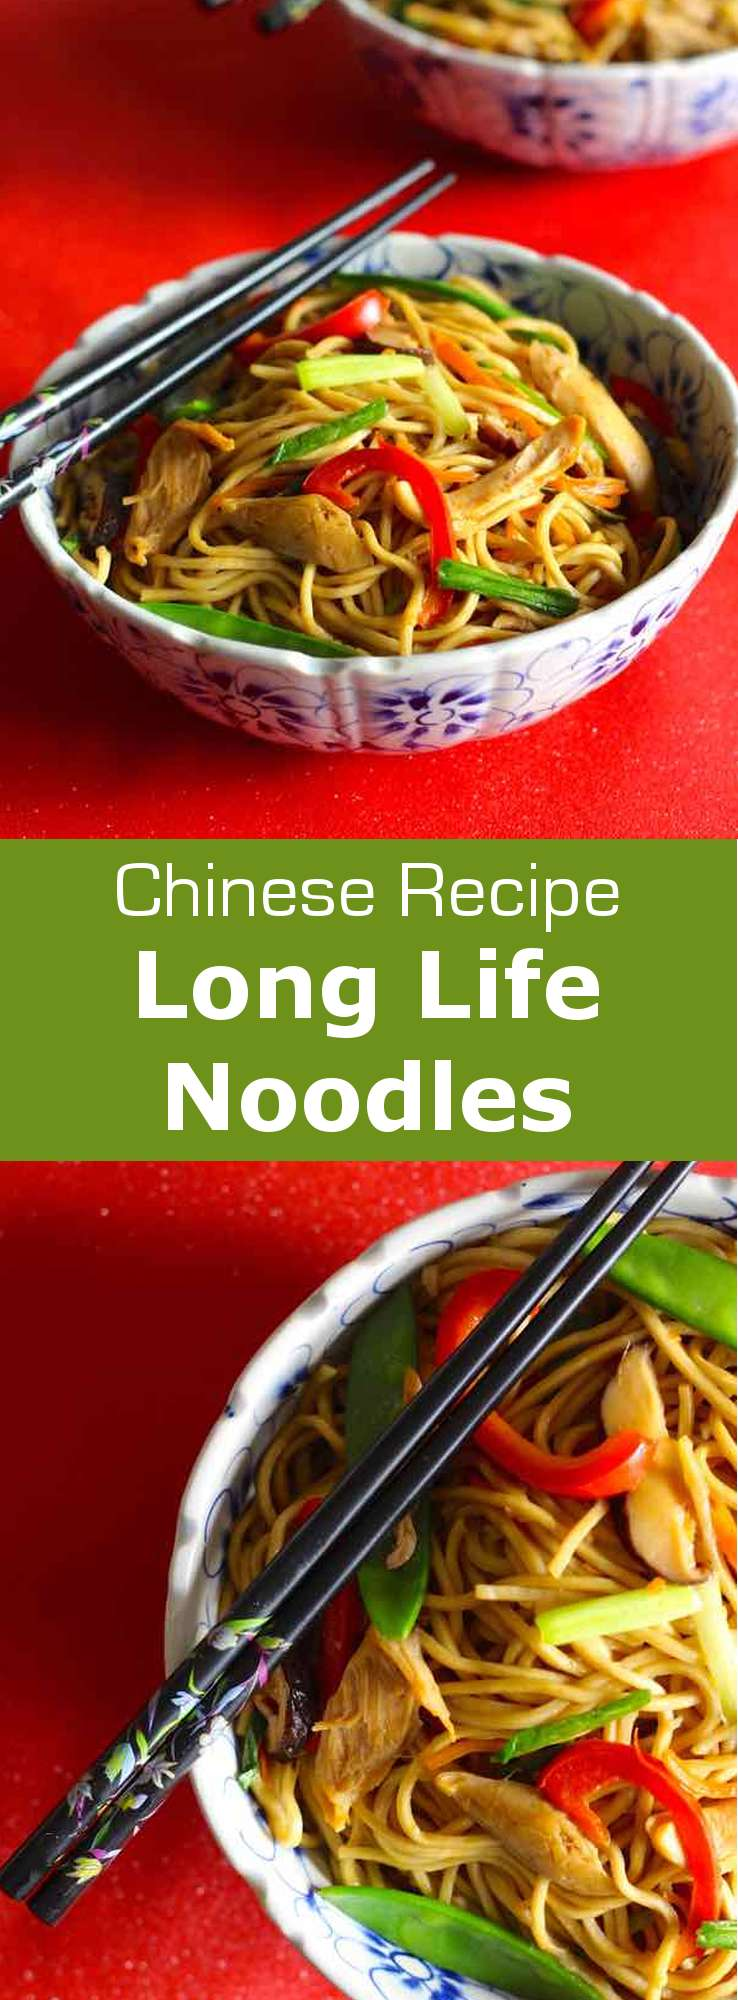 Long life noodles are a traditional Chinese dish of egg wheat noodles that is often served at birthdays and celebrations like Chinese New Year. #Chinese #Asian #ChineseRecipe #ChineseFood #ChineseCuisine #AsianCuisine #AsianRecipe #Noodles #NoodleRecipe #WorldCuisine #196flavors